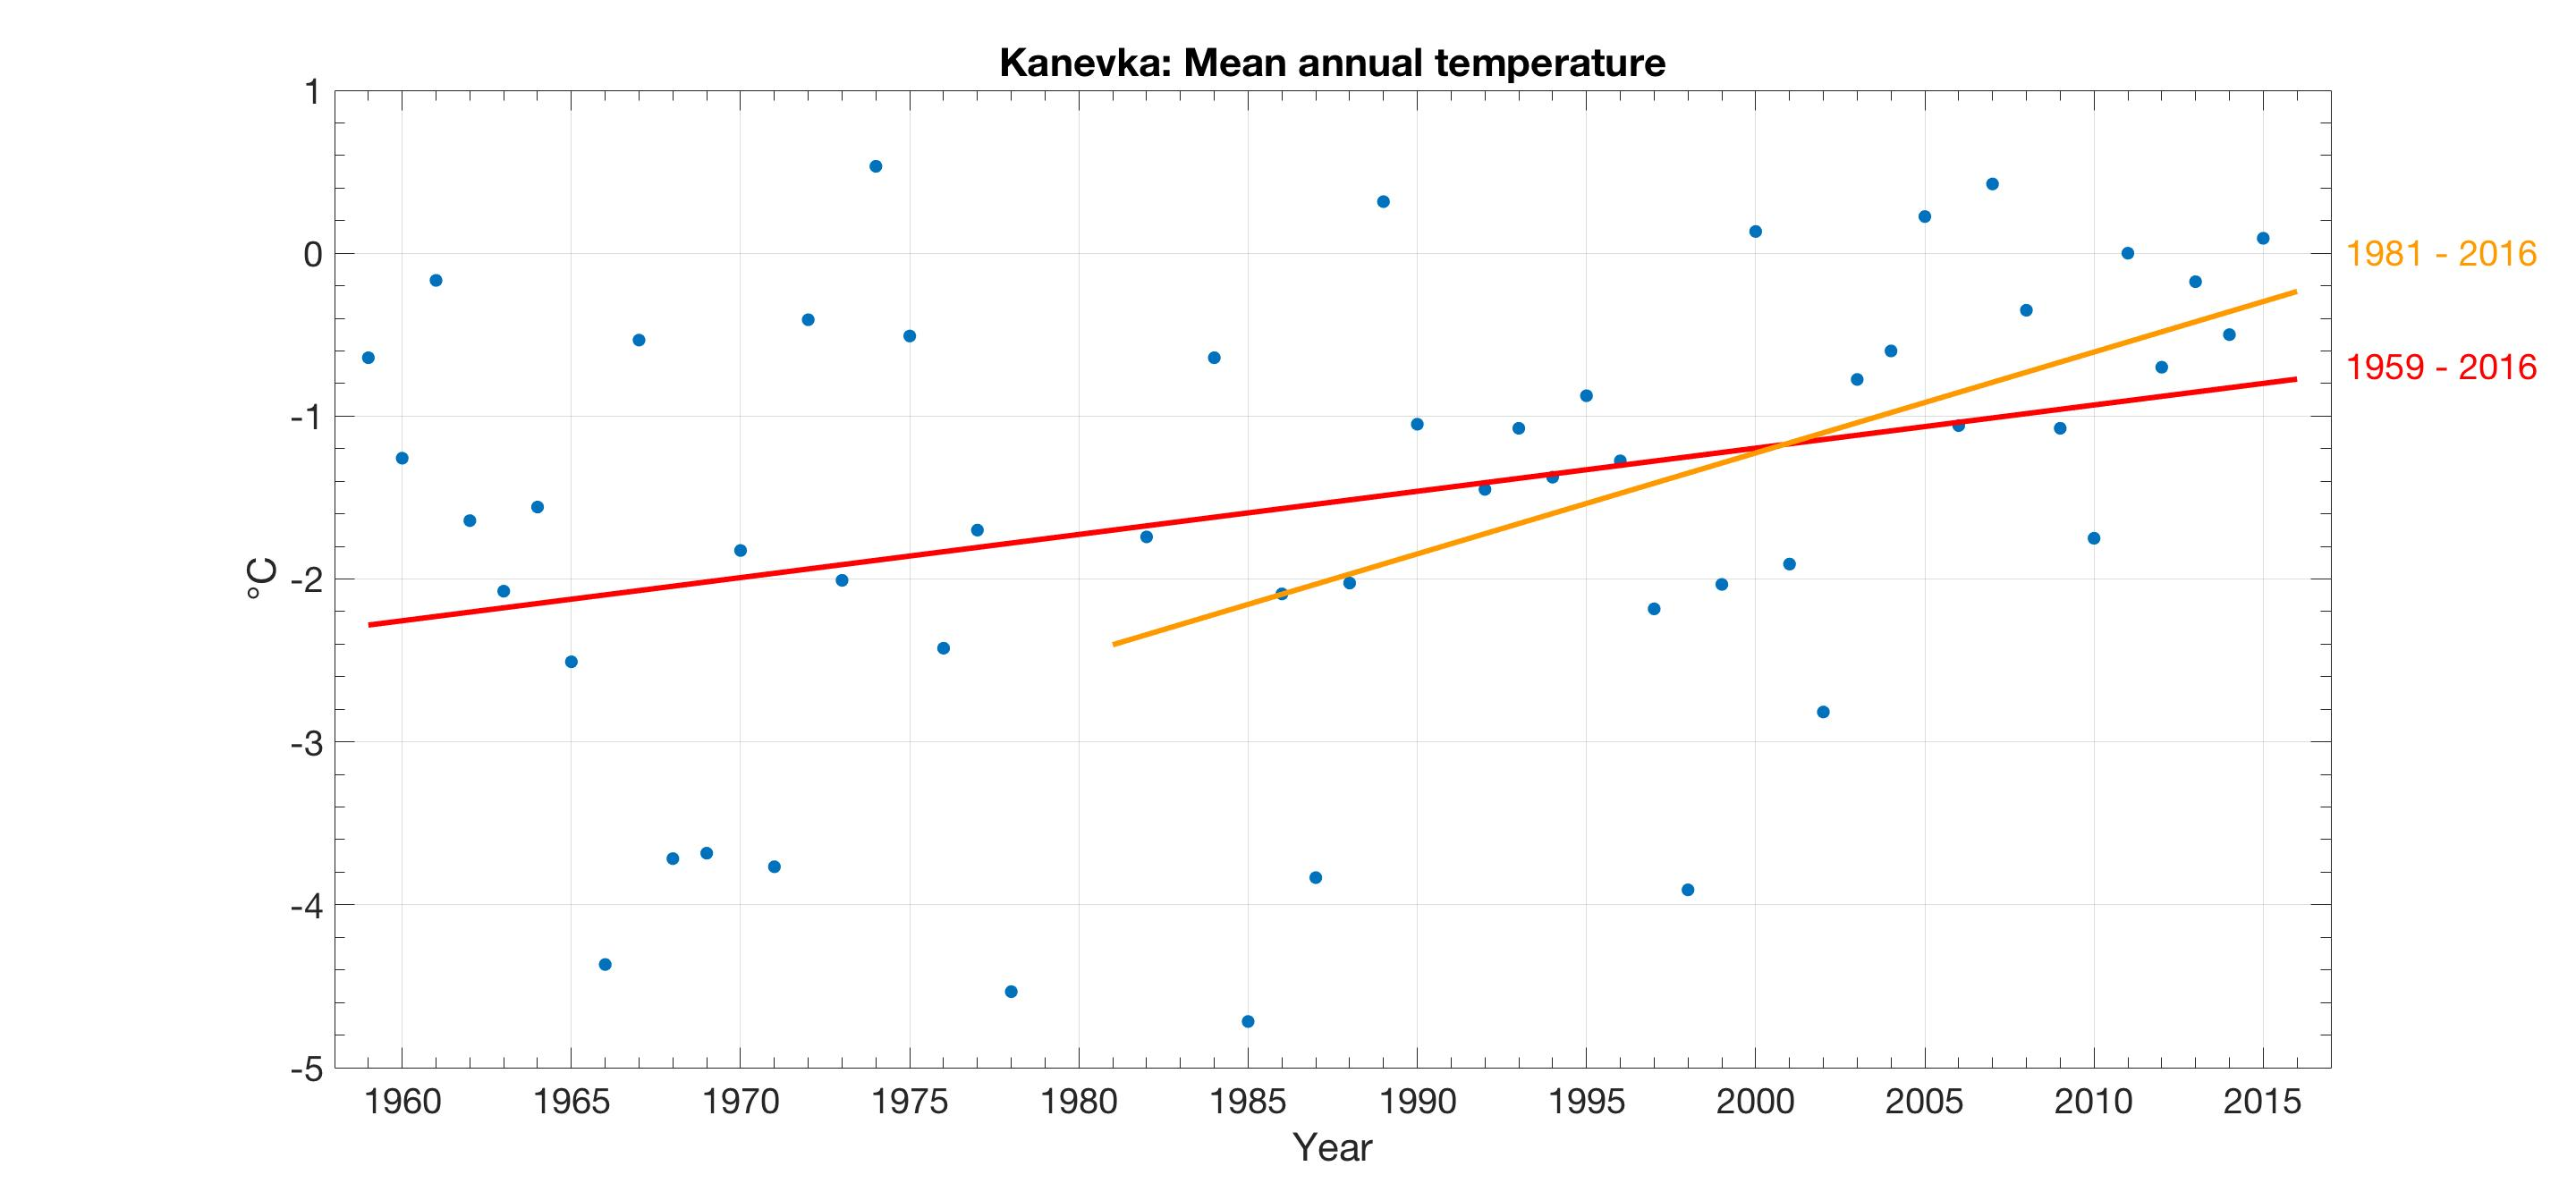 Inland weather warming is also visible in the data sets from Kanevka, Central Ponoi. Data sets by Brie Van Dam, Snowchange